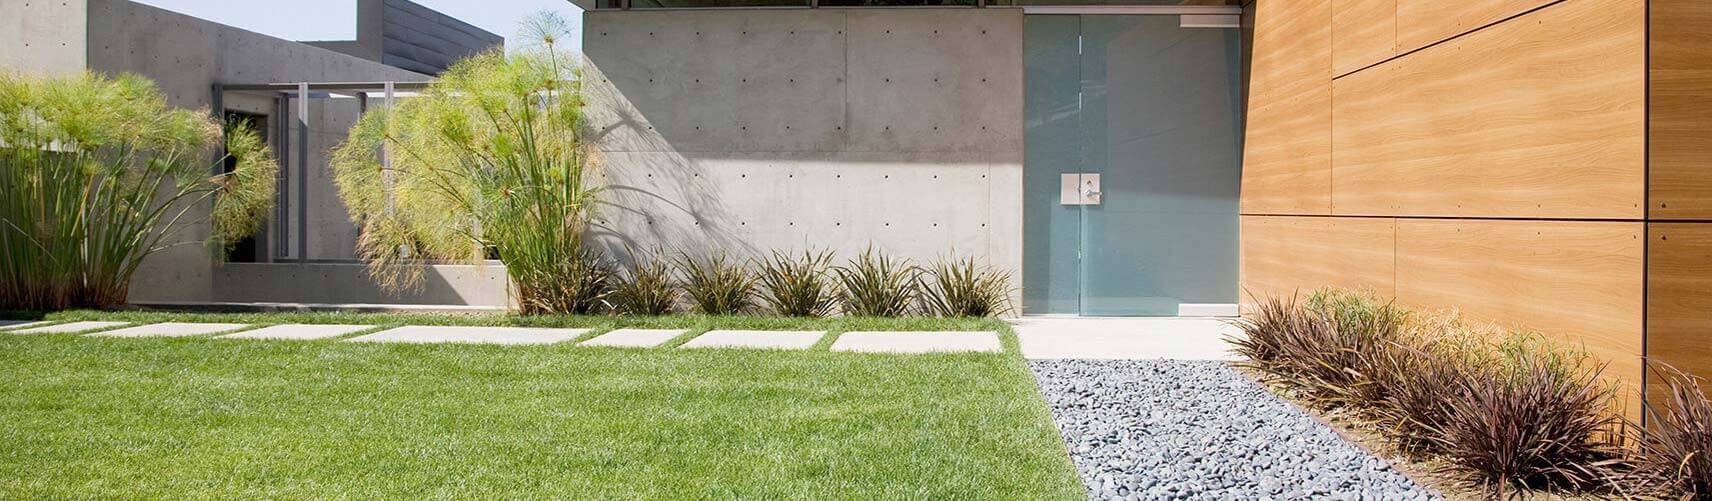 Washington, DC Landscaping Company, Landscaper and Landscaping Services